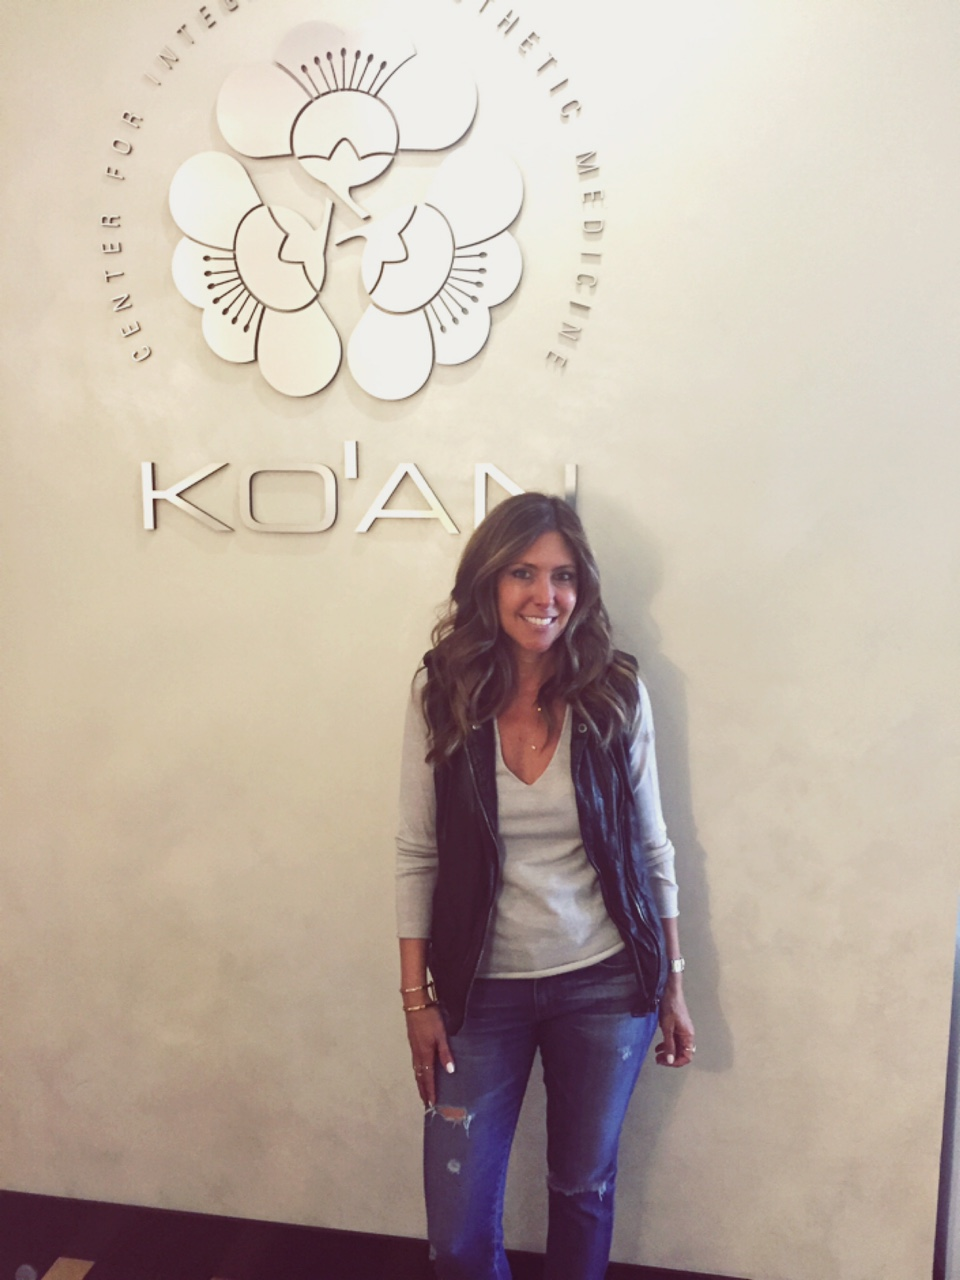 One of my favorite go-to places for body and face treatments is The KO'AN center located at 1301 20th Street, Suite 150A,Santa Monica. This beautiful center for integrated aesthetic medicine offers a variety of services for body and face restyling.